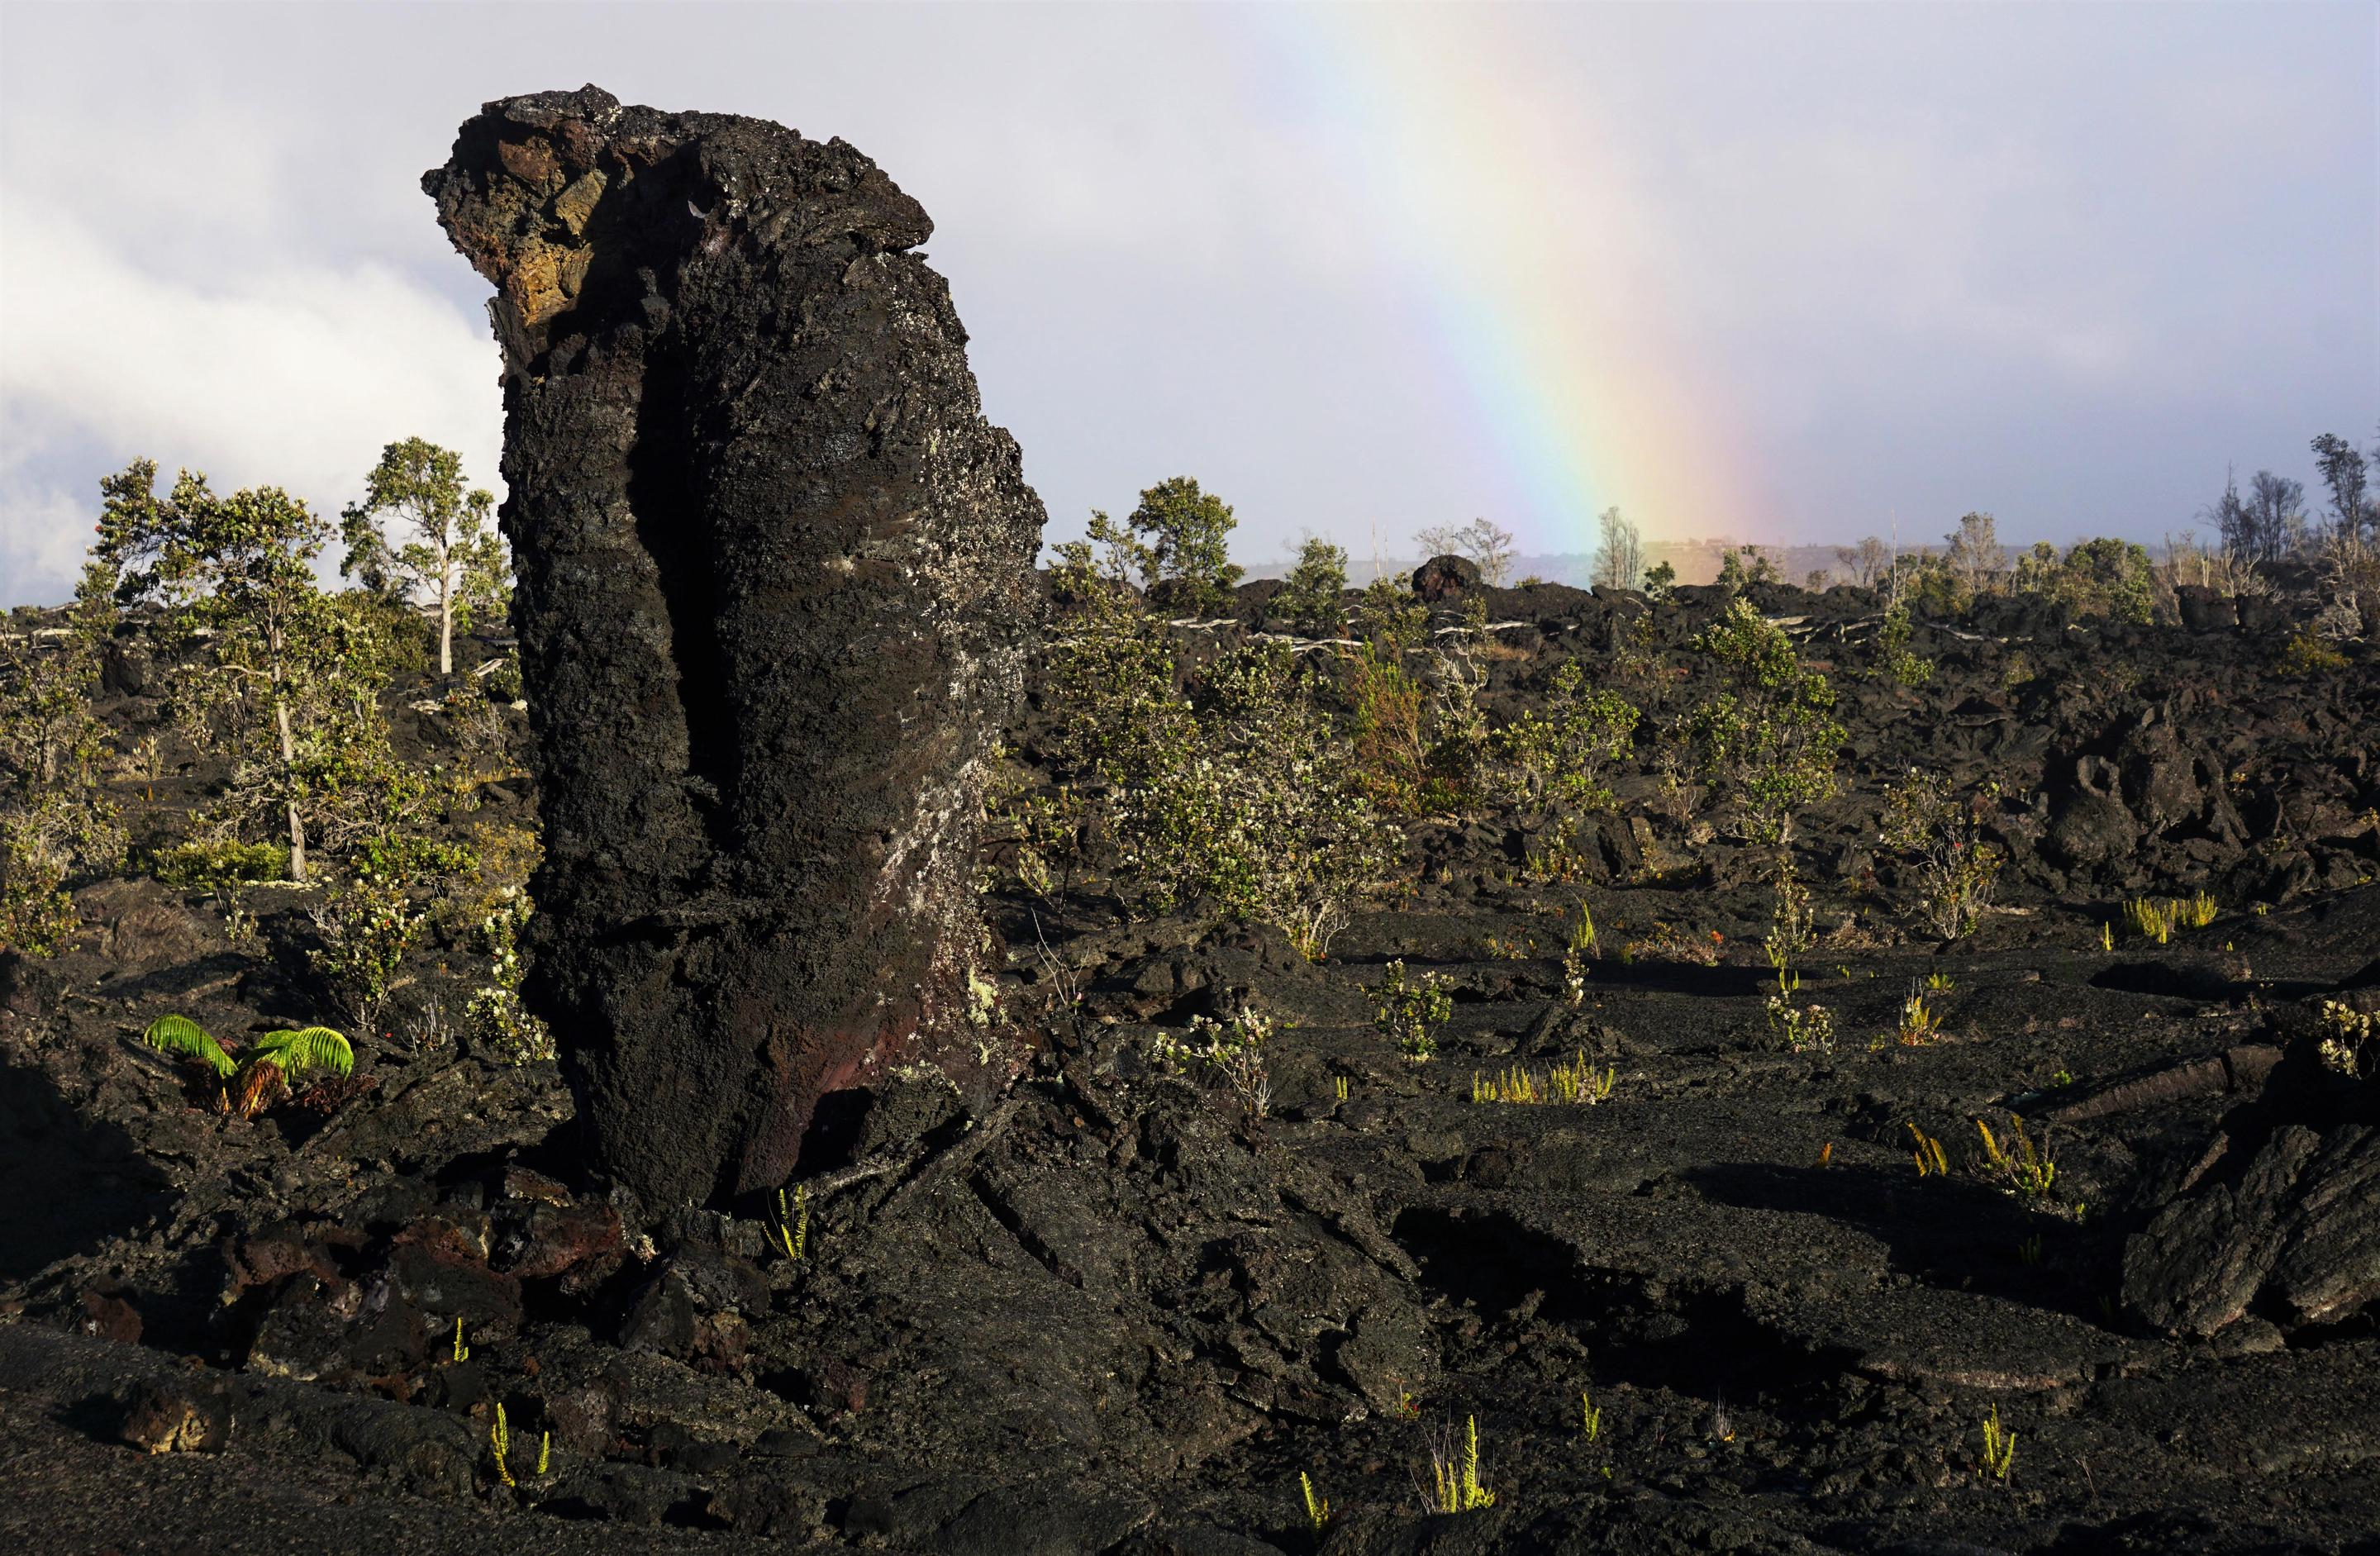 Lava TreesLava trees stand frozen in time where molten lava flowed